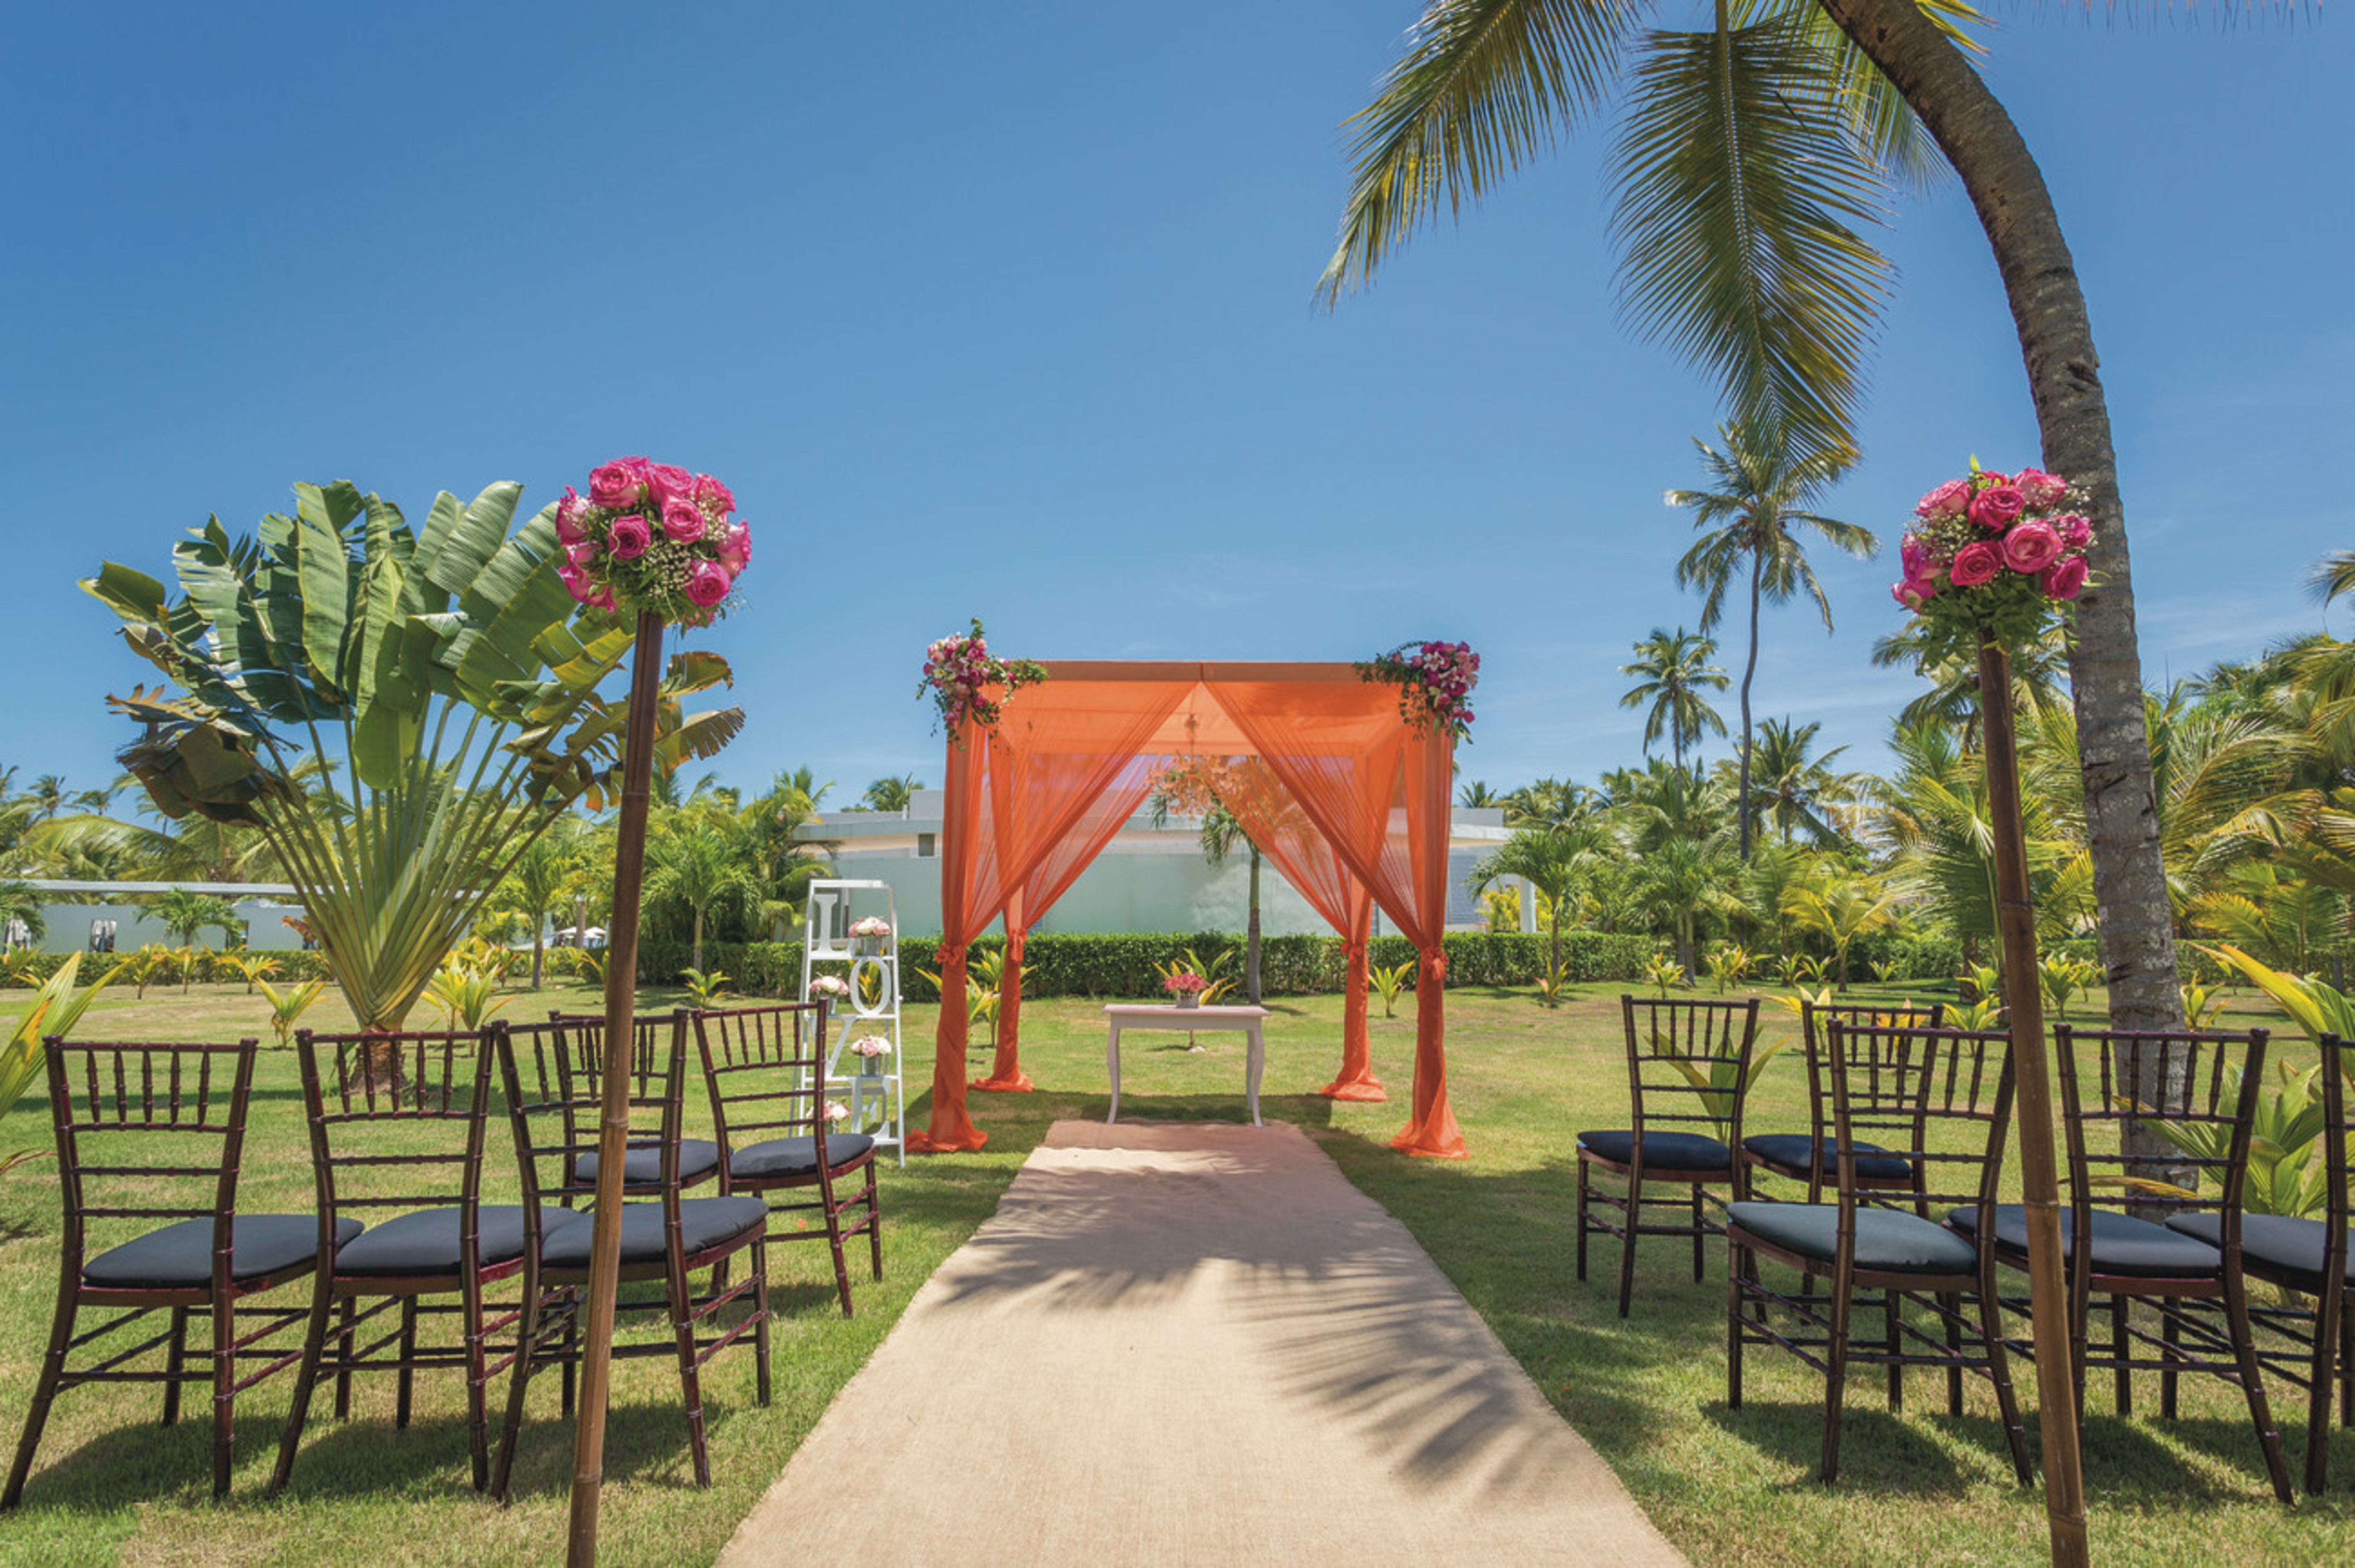 Garden ceremony at Riu Palace Bavaro